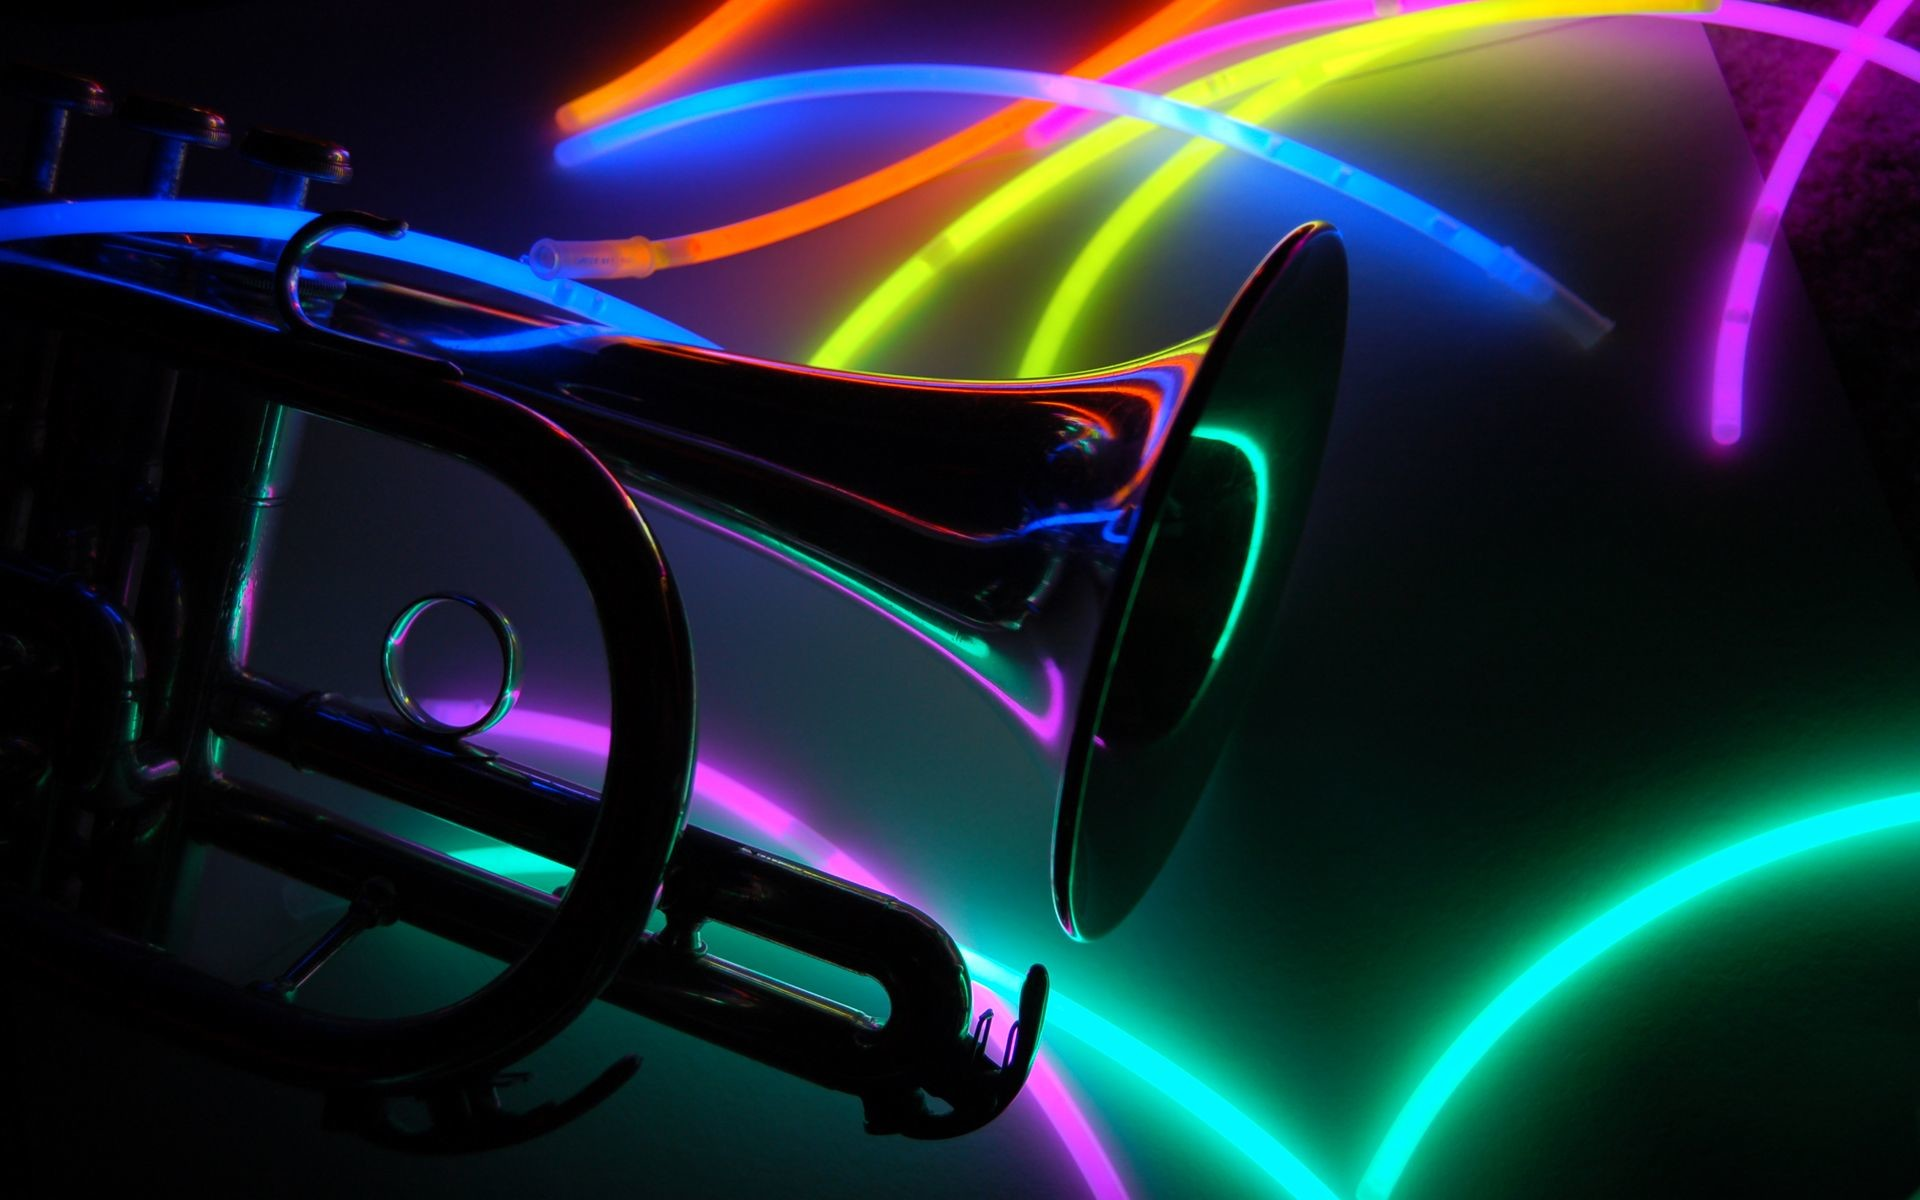 1920x1200 Neon Backgrounds | Trumpet Neon Colors Wallpaper Music Art - Free Download  Trumpet Neon .